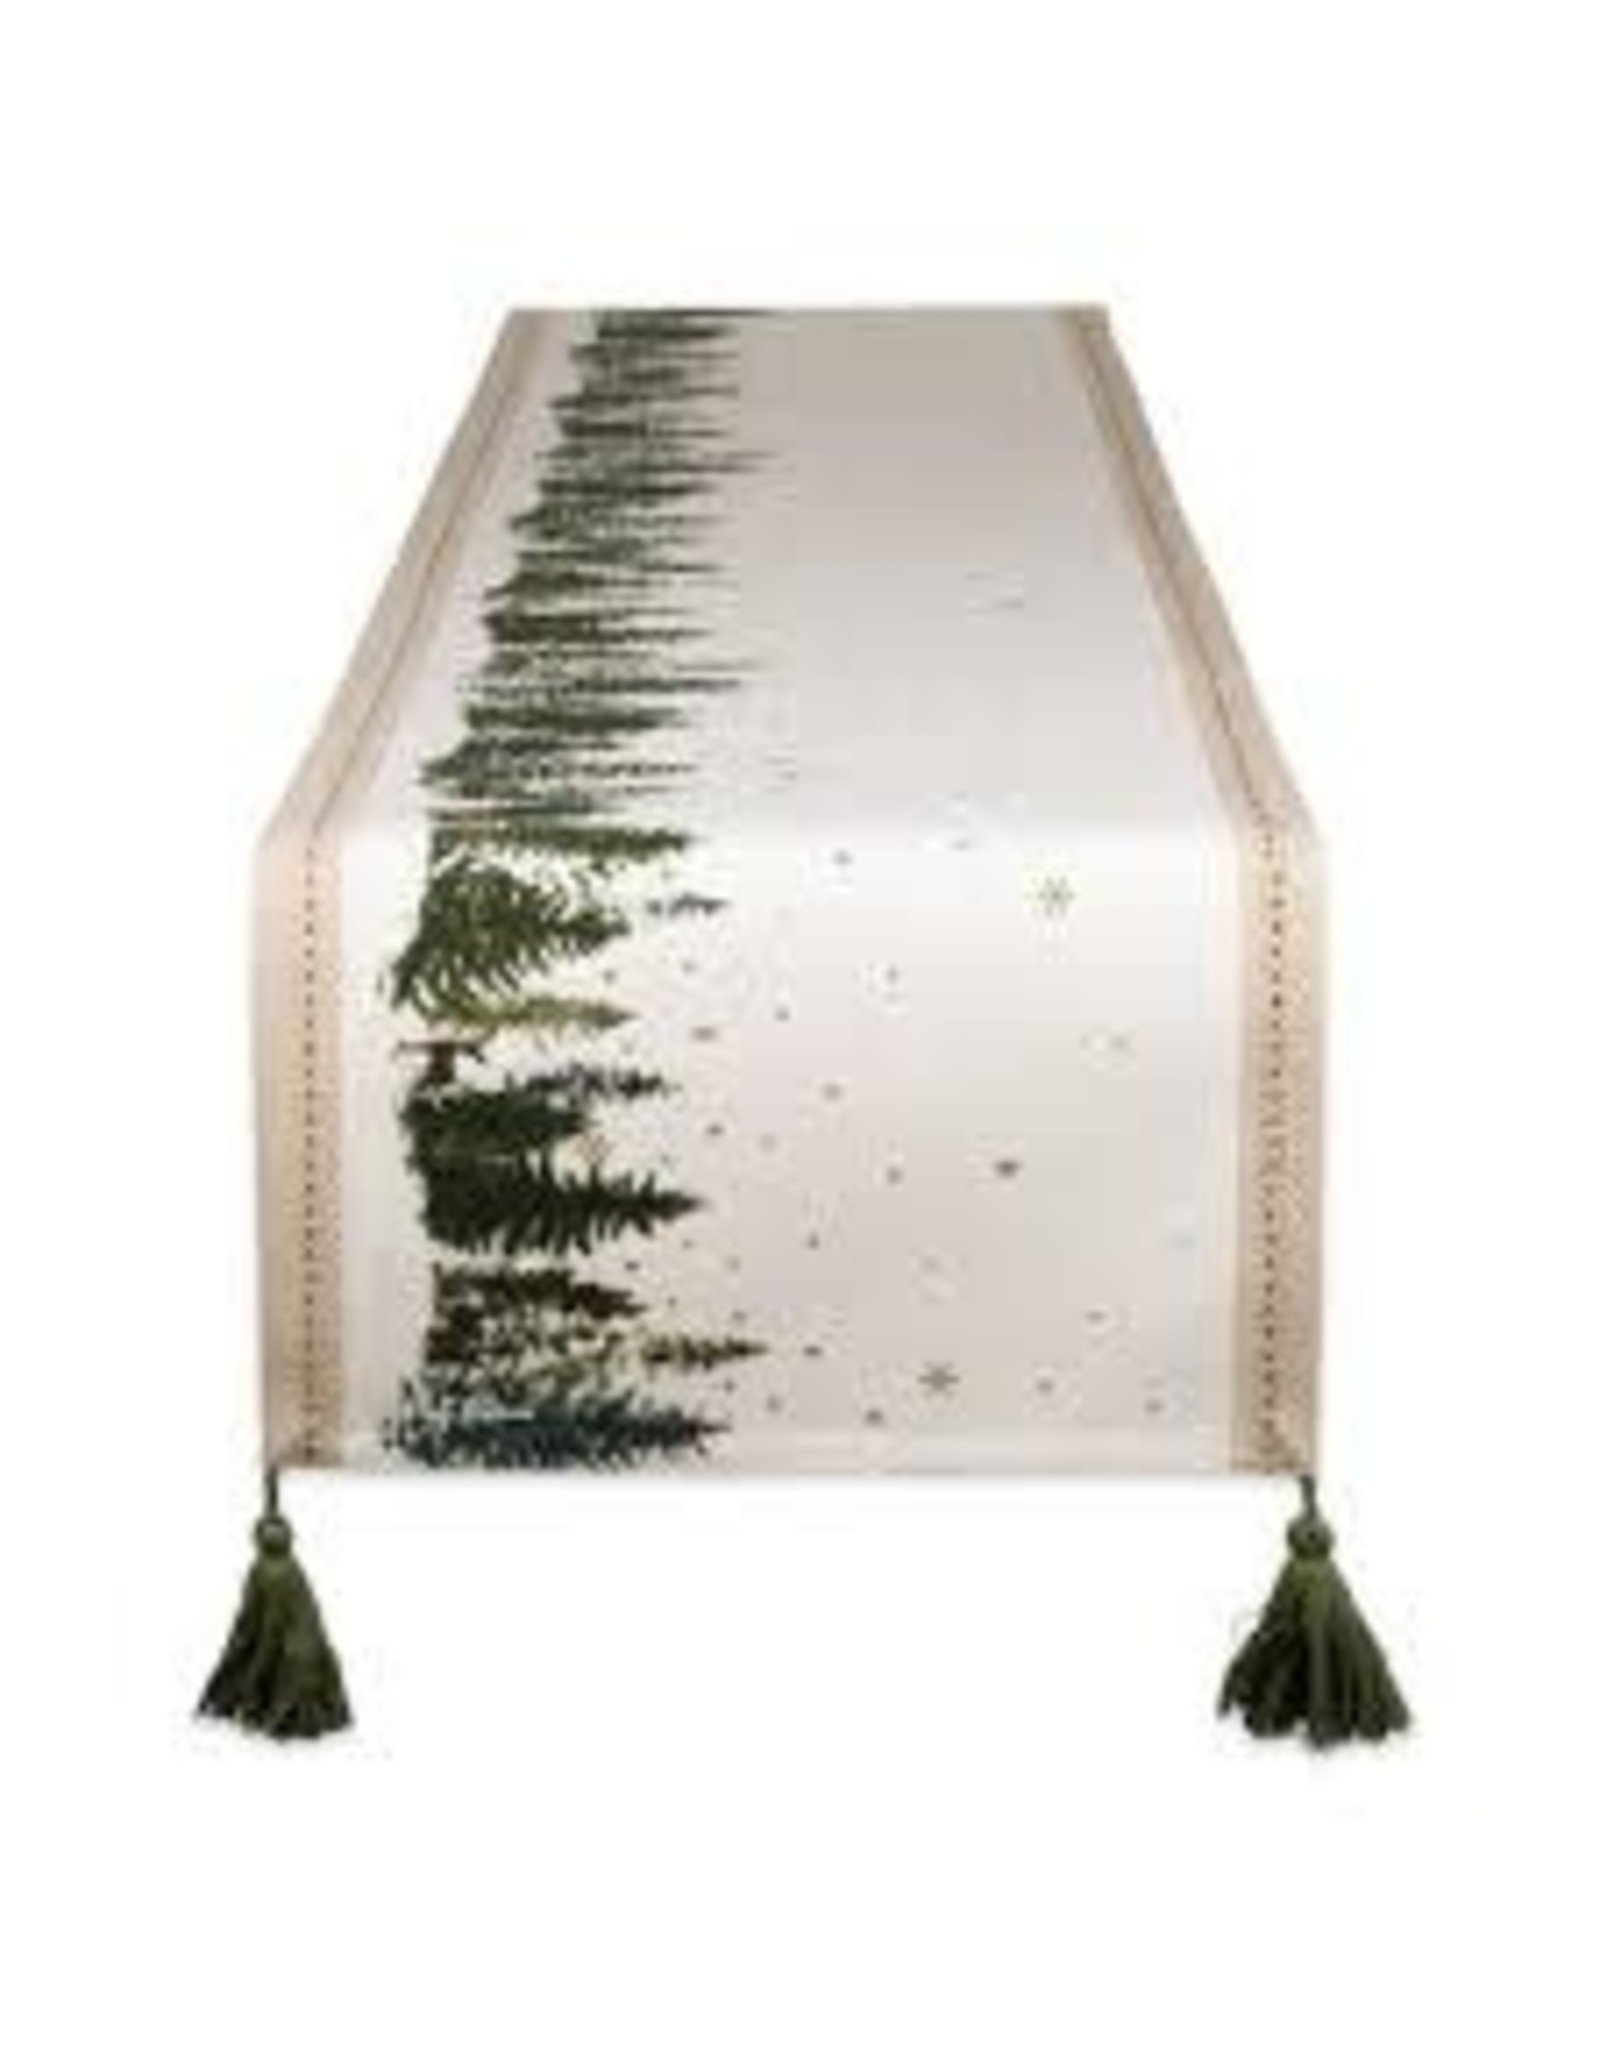 Design Imports DI Winter Woodland Table Runner